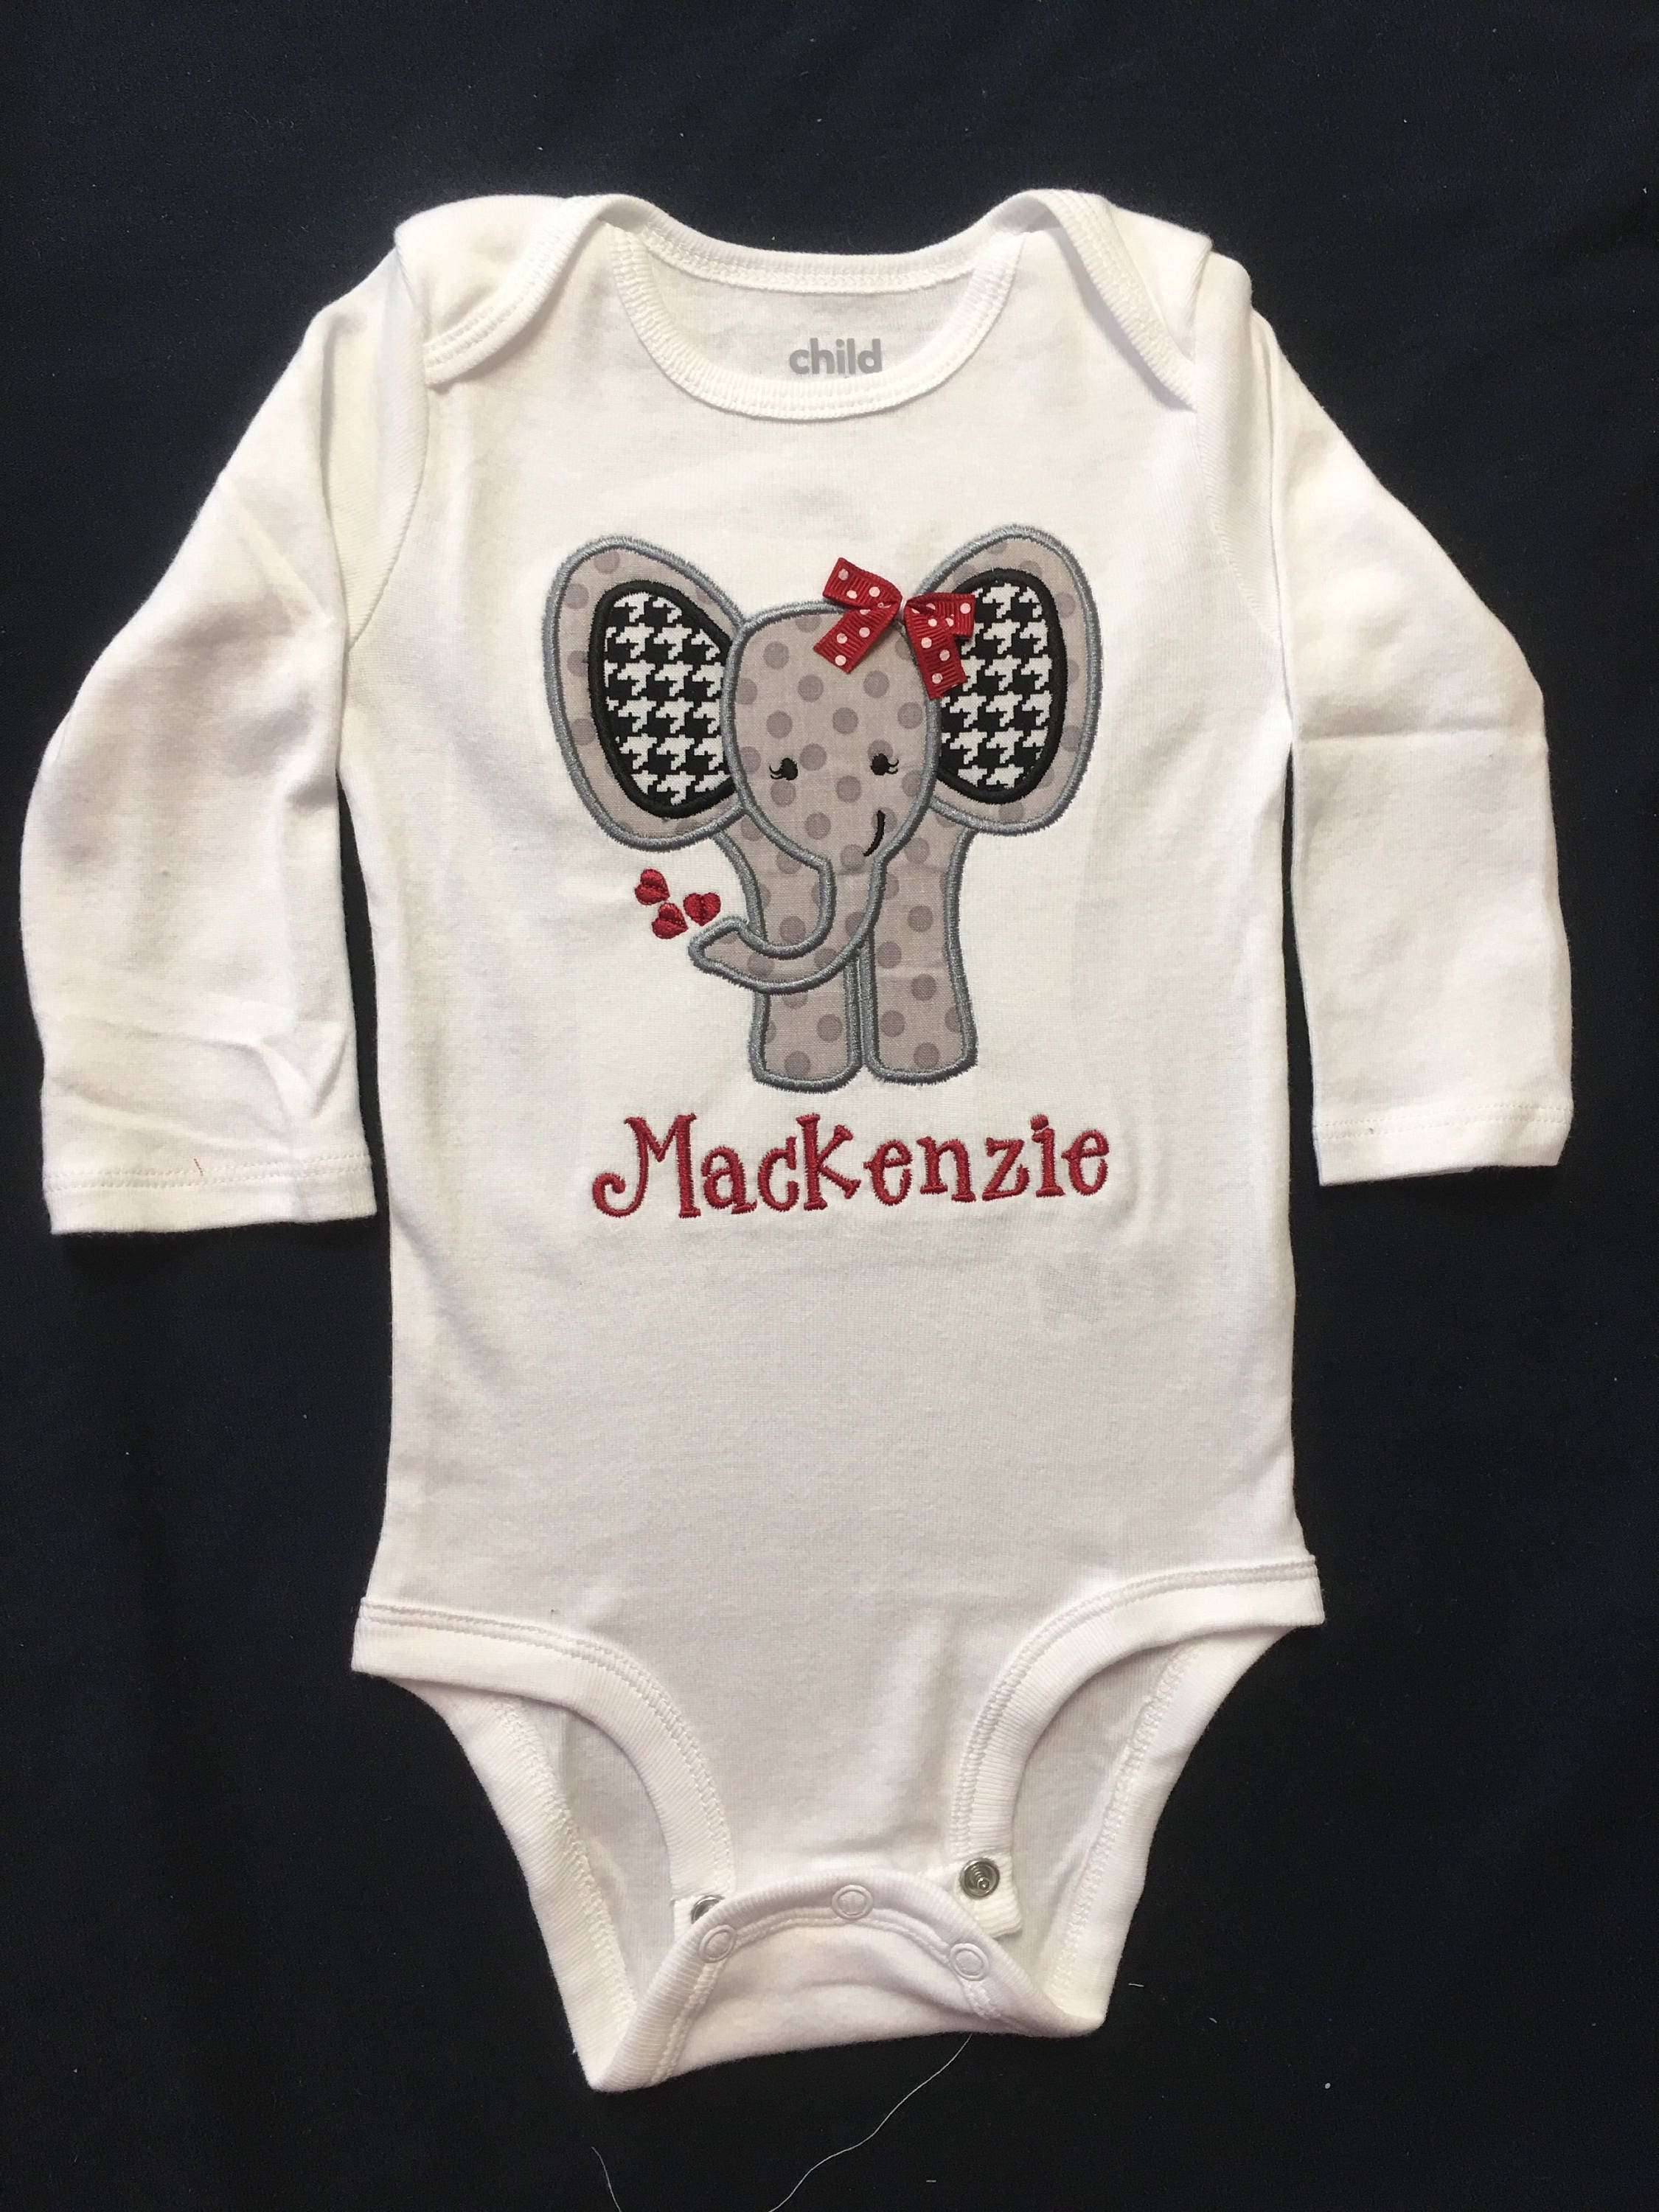 Baby Girl or Baby Boy Applique Body Suit Set with Appliqued Elephant